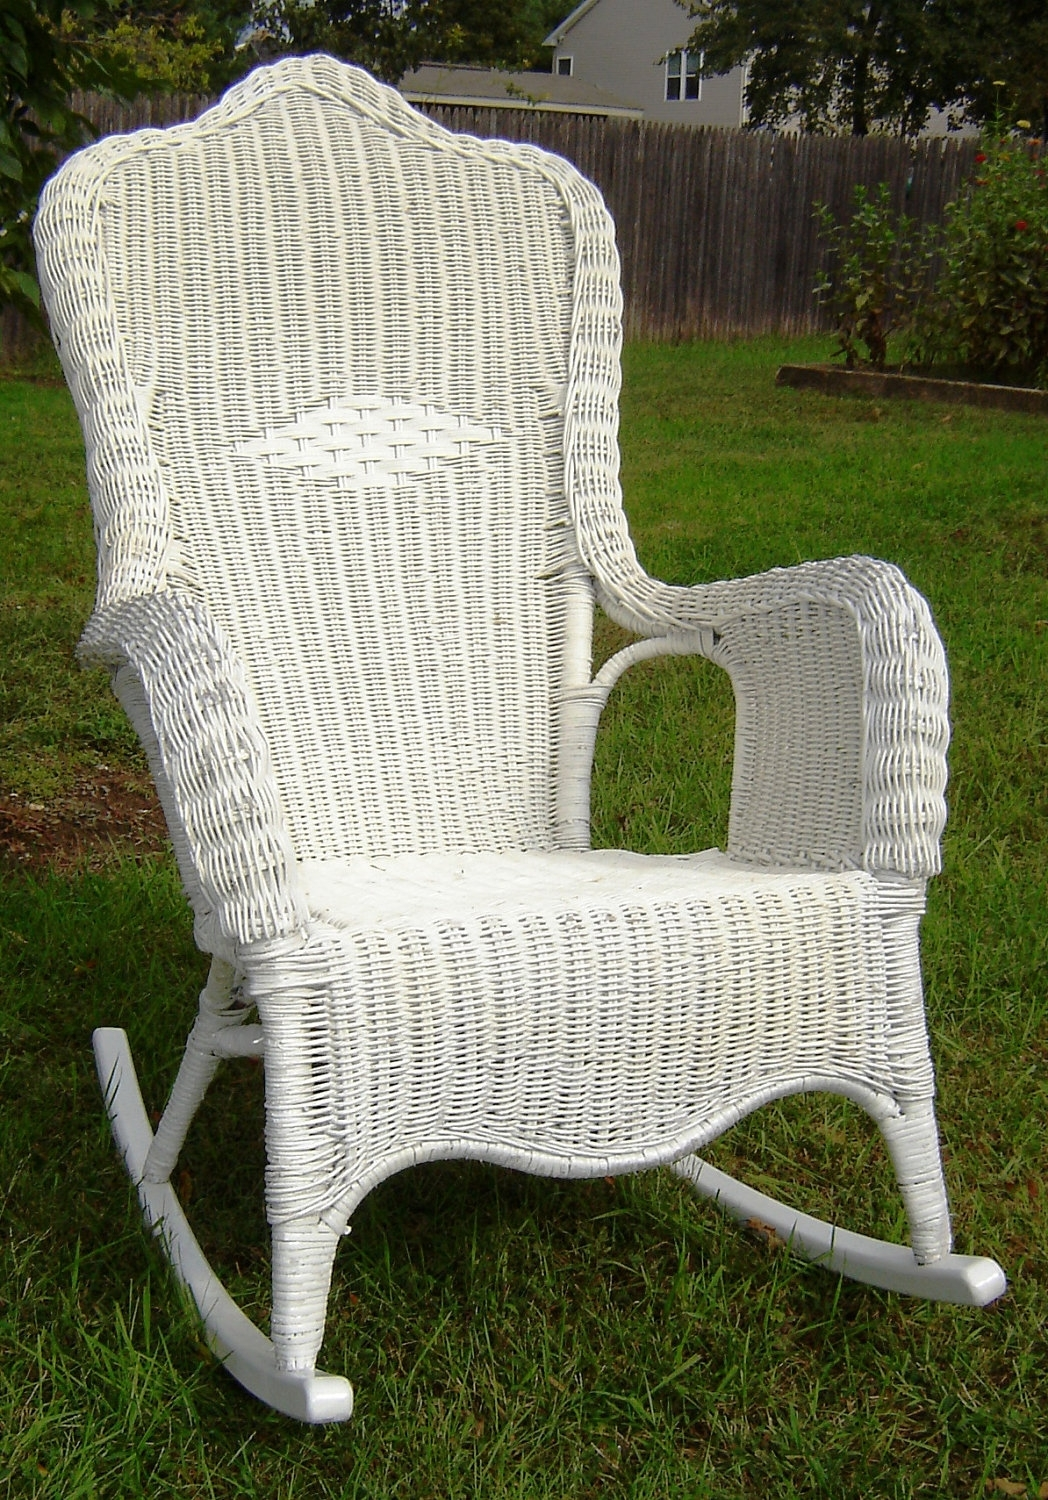 Preferred 55 White Wicker Rocking Chair, White Wicker Rocking Chair Throughout White Wicker Rocking Chair For Nursery (View 4 of 15)